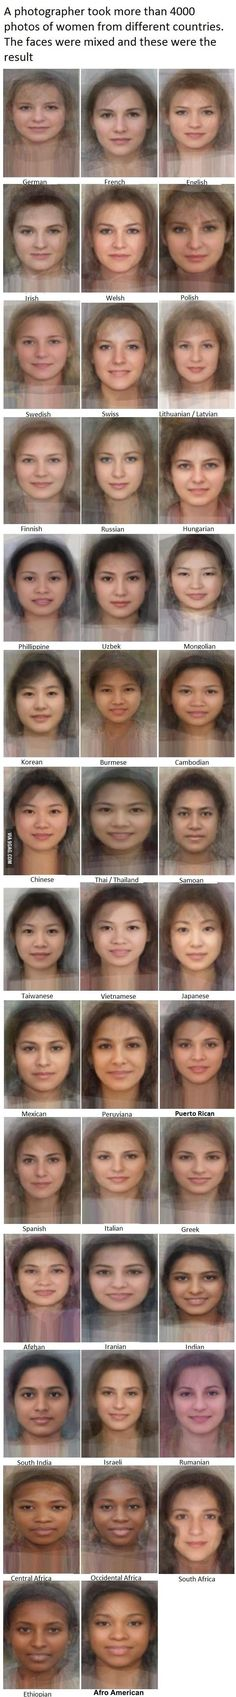 Average face from women from different countries